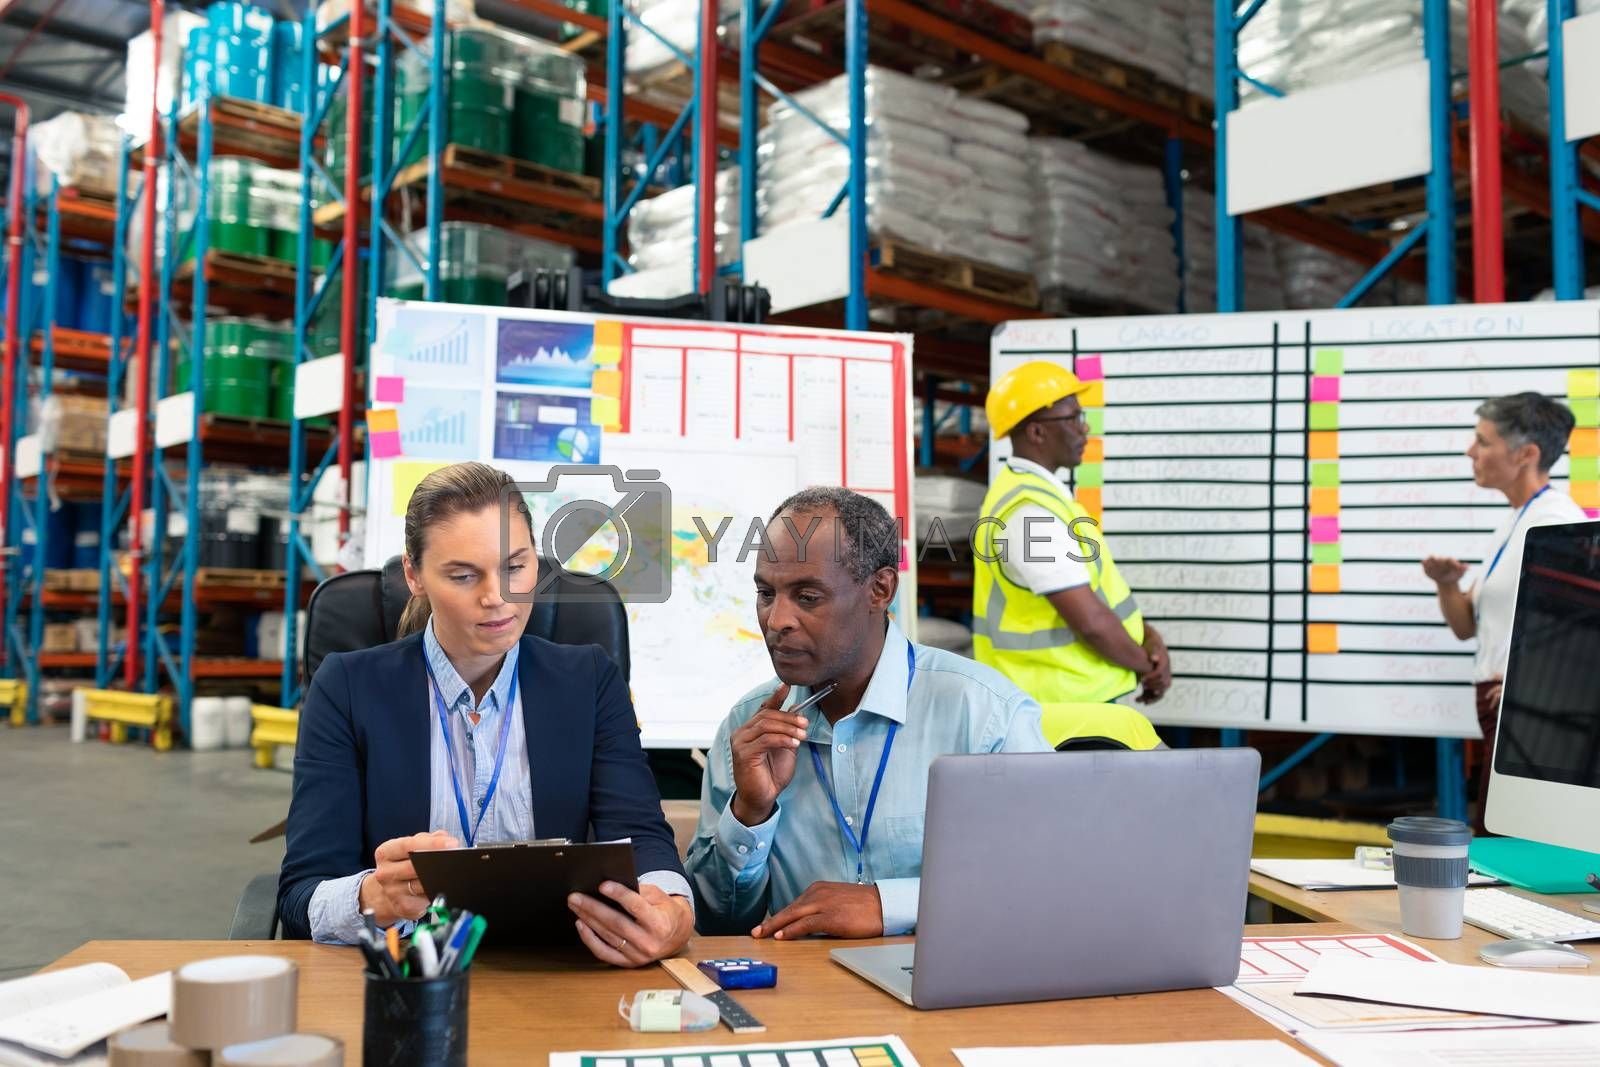 Front view of Caucasian female manager and African-american male supervisor discussing over clipboard at desk in warehouse. This is a freight transportation and distribution warehouse. Industrial and industrial workers concept